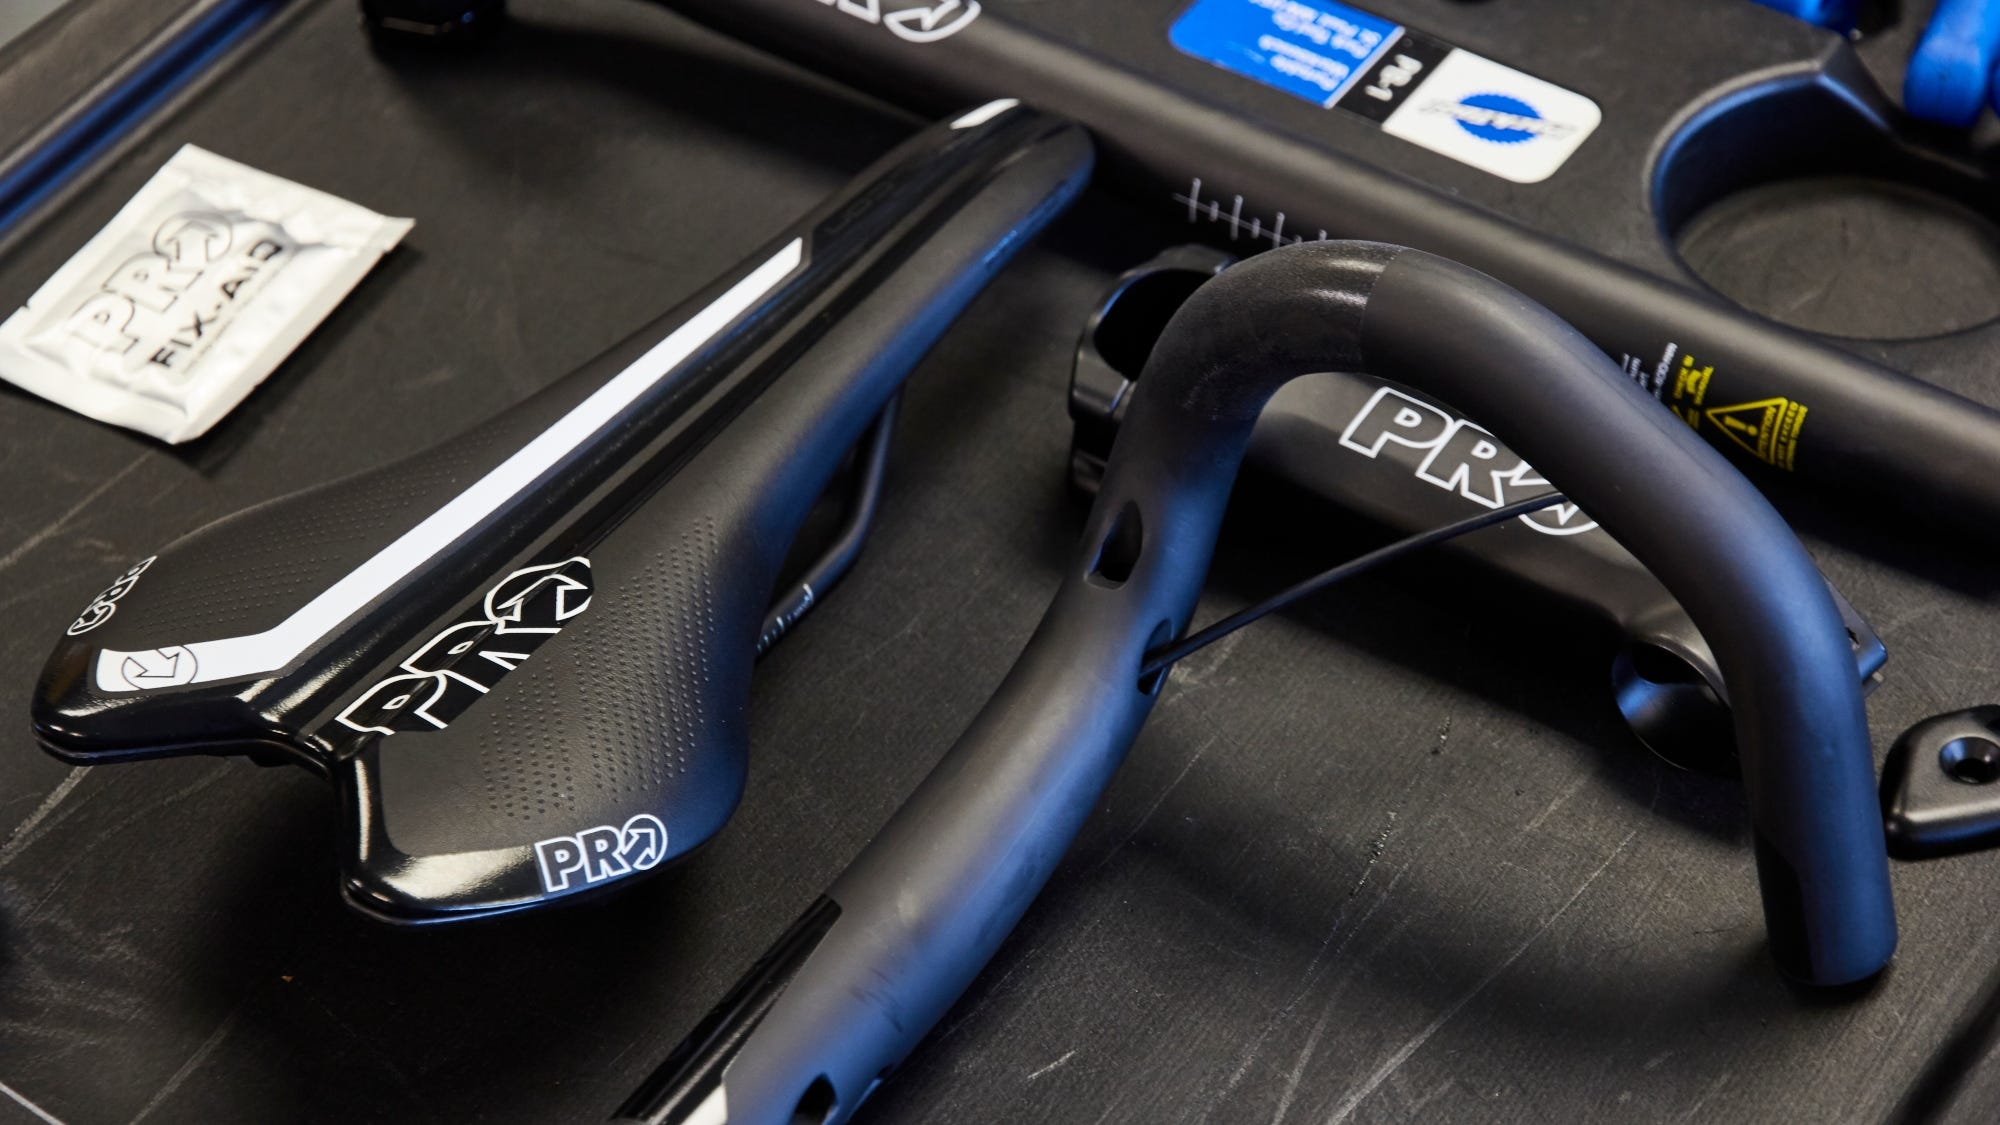 Five ways to customise your bike